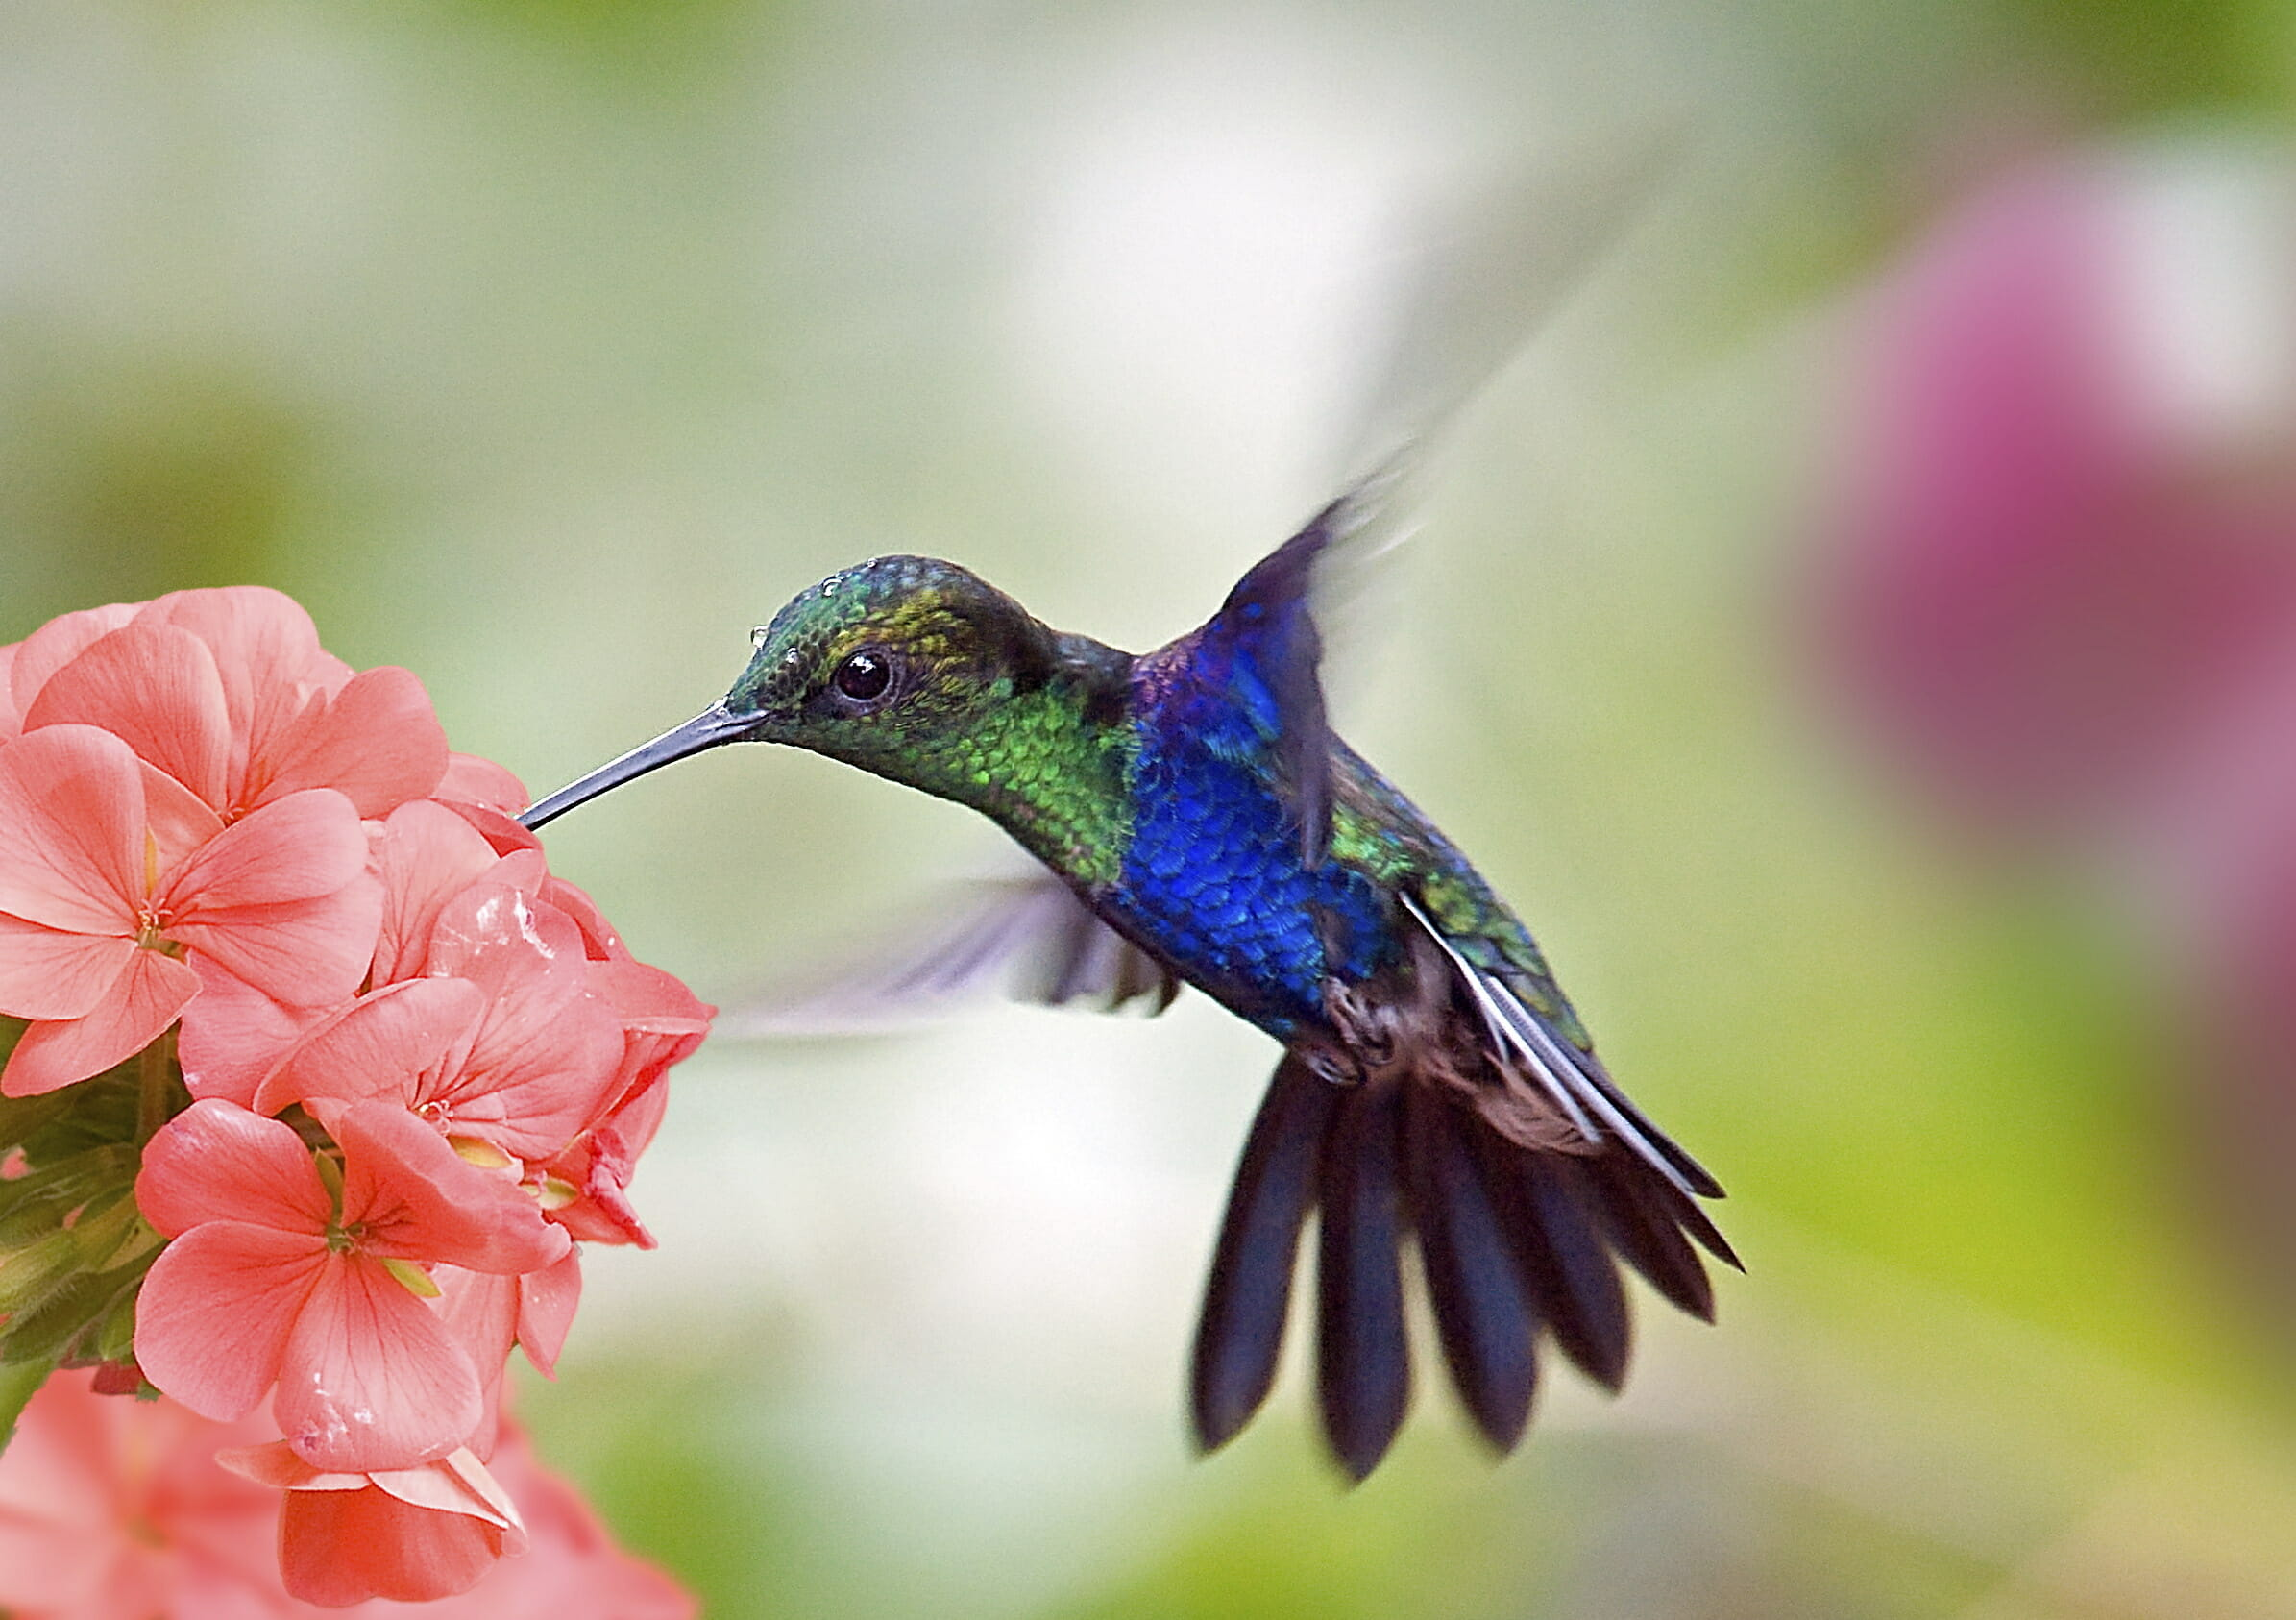 do hummingbirds pollinate